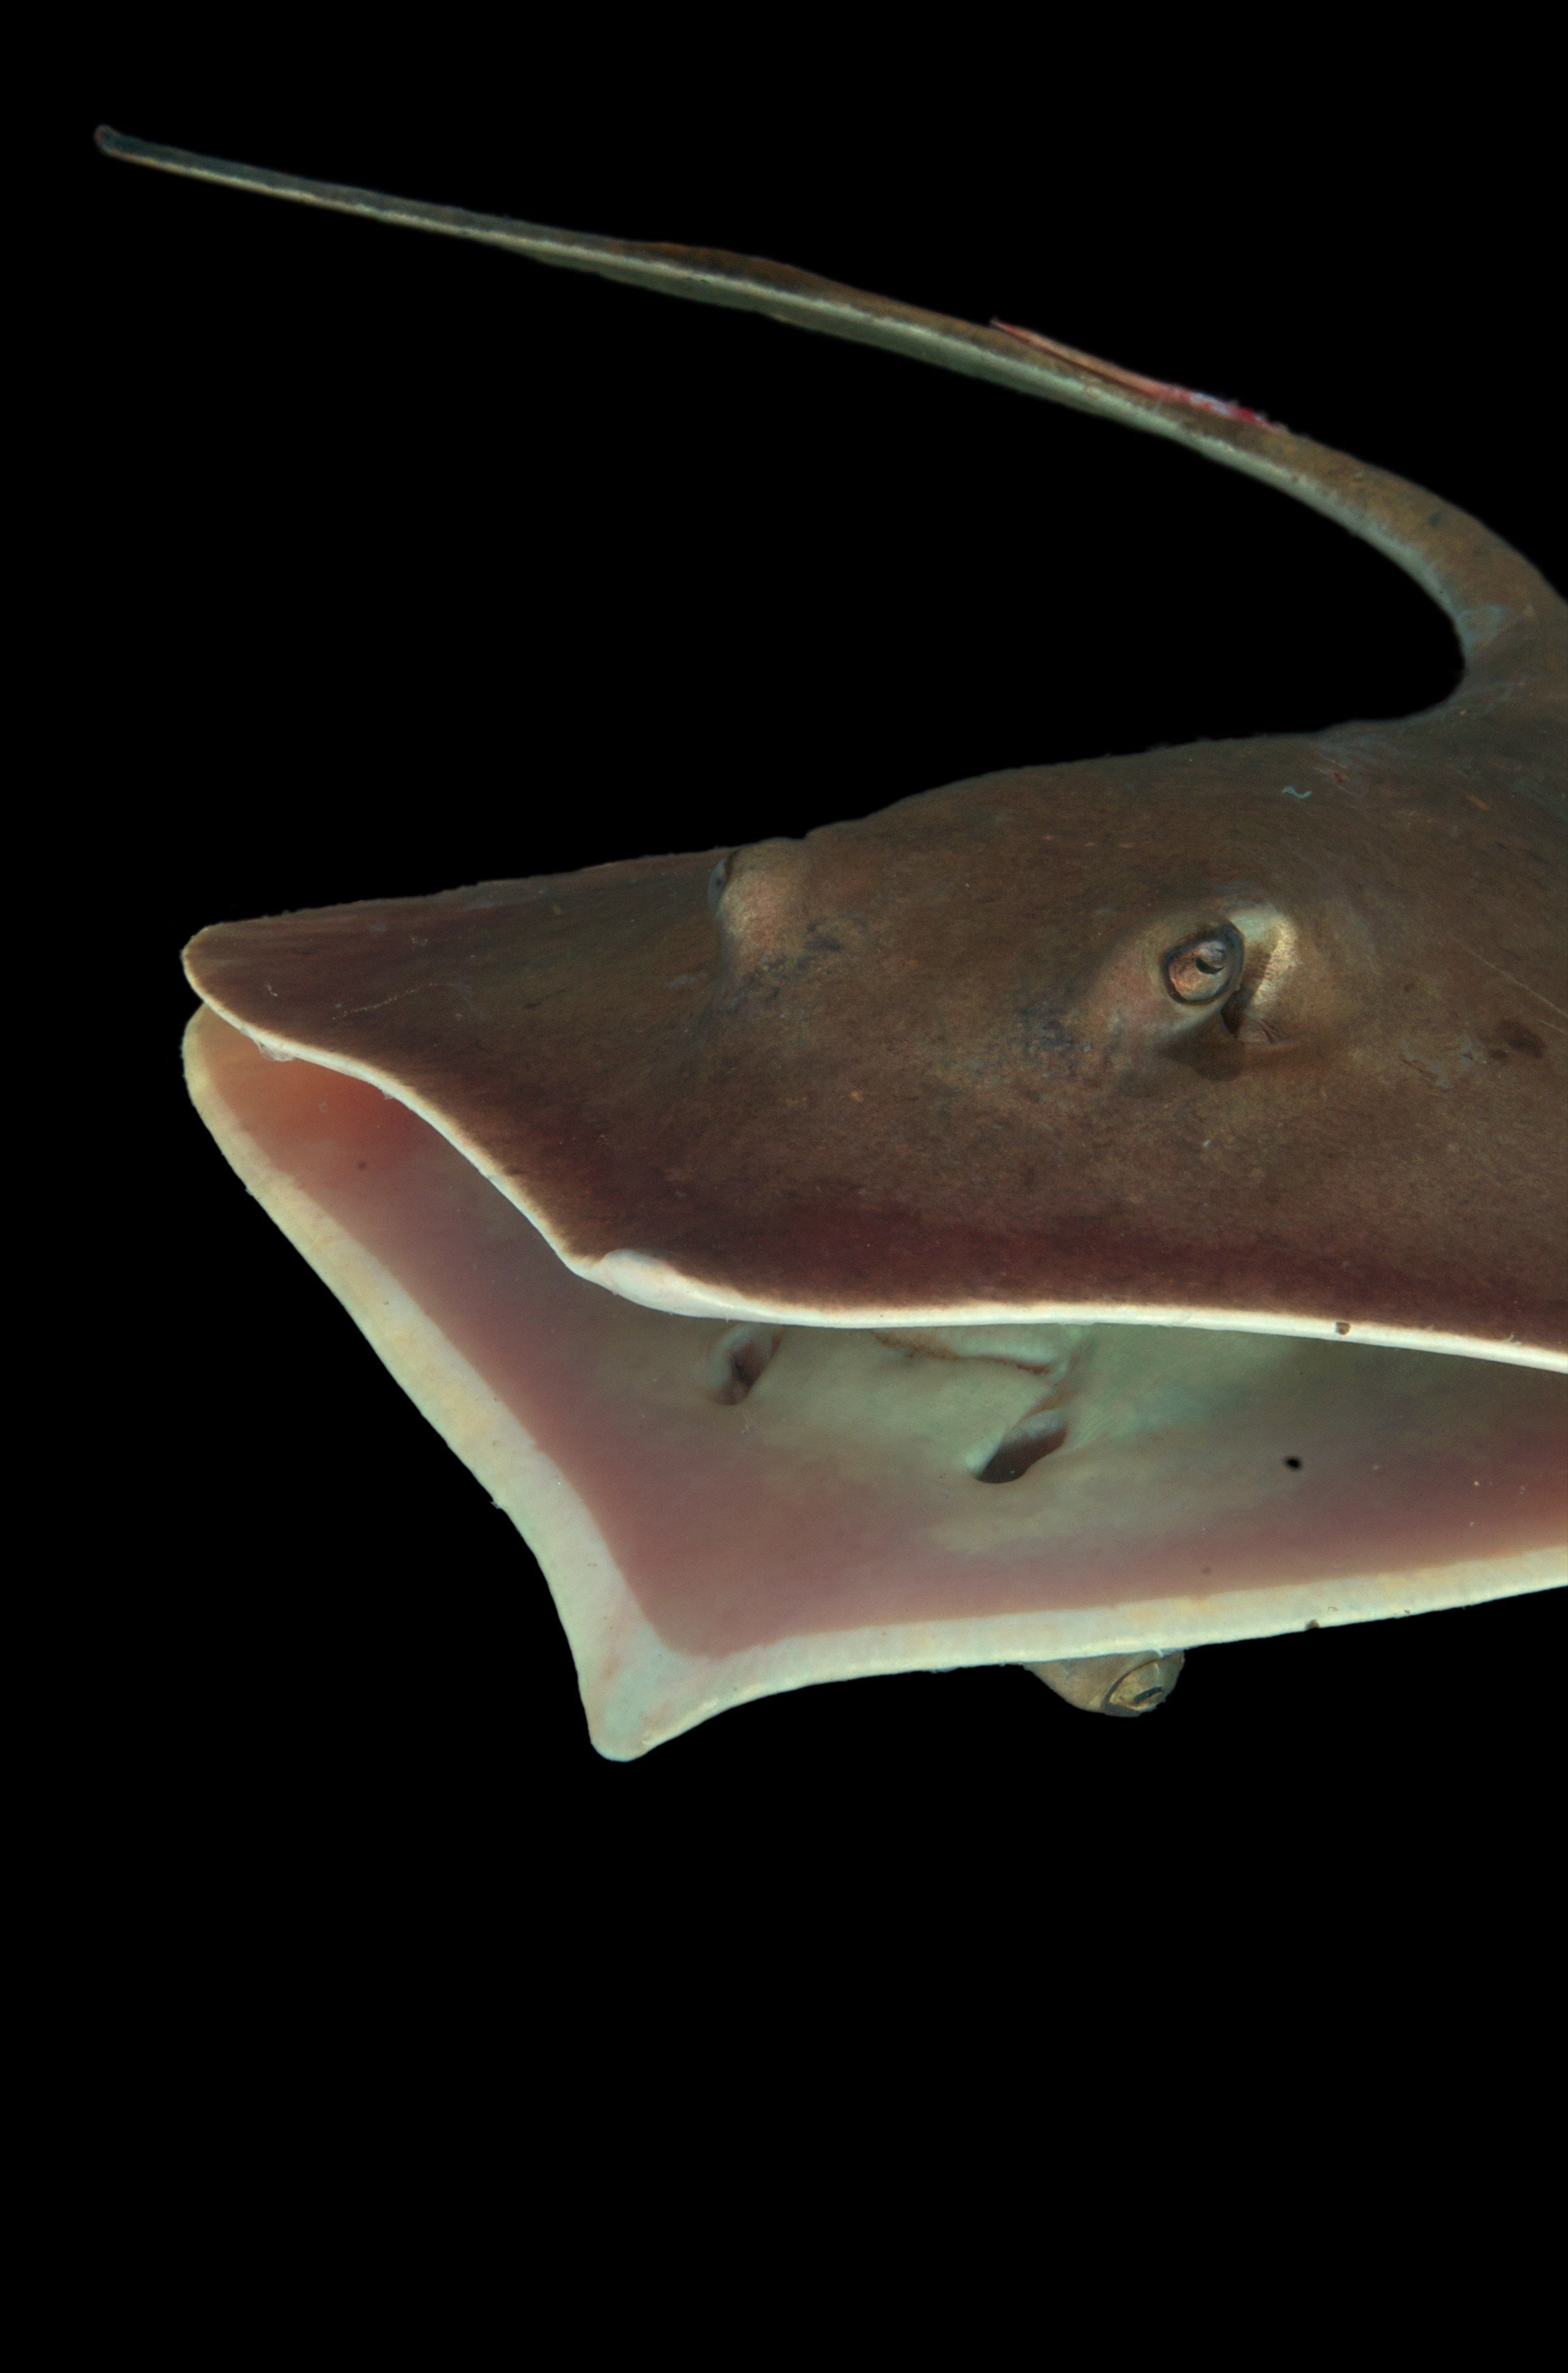 Deepwater Horizon oil spill's dramatic effect on stingrays' sensory abilities